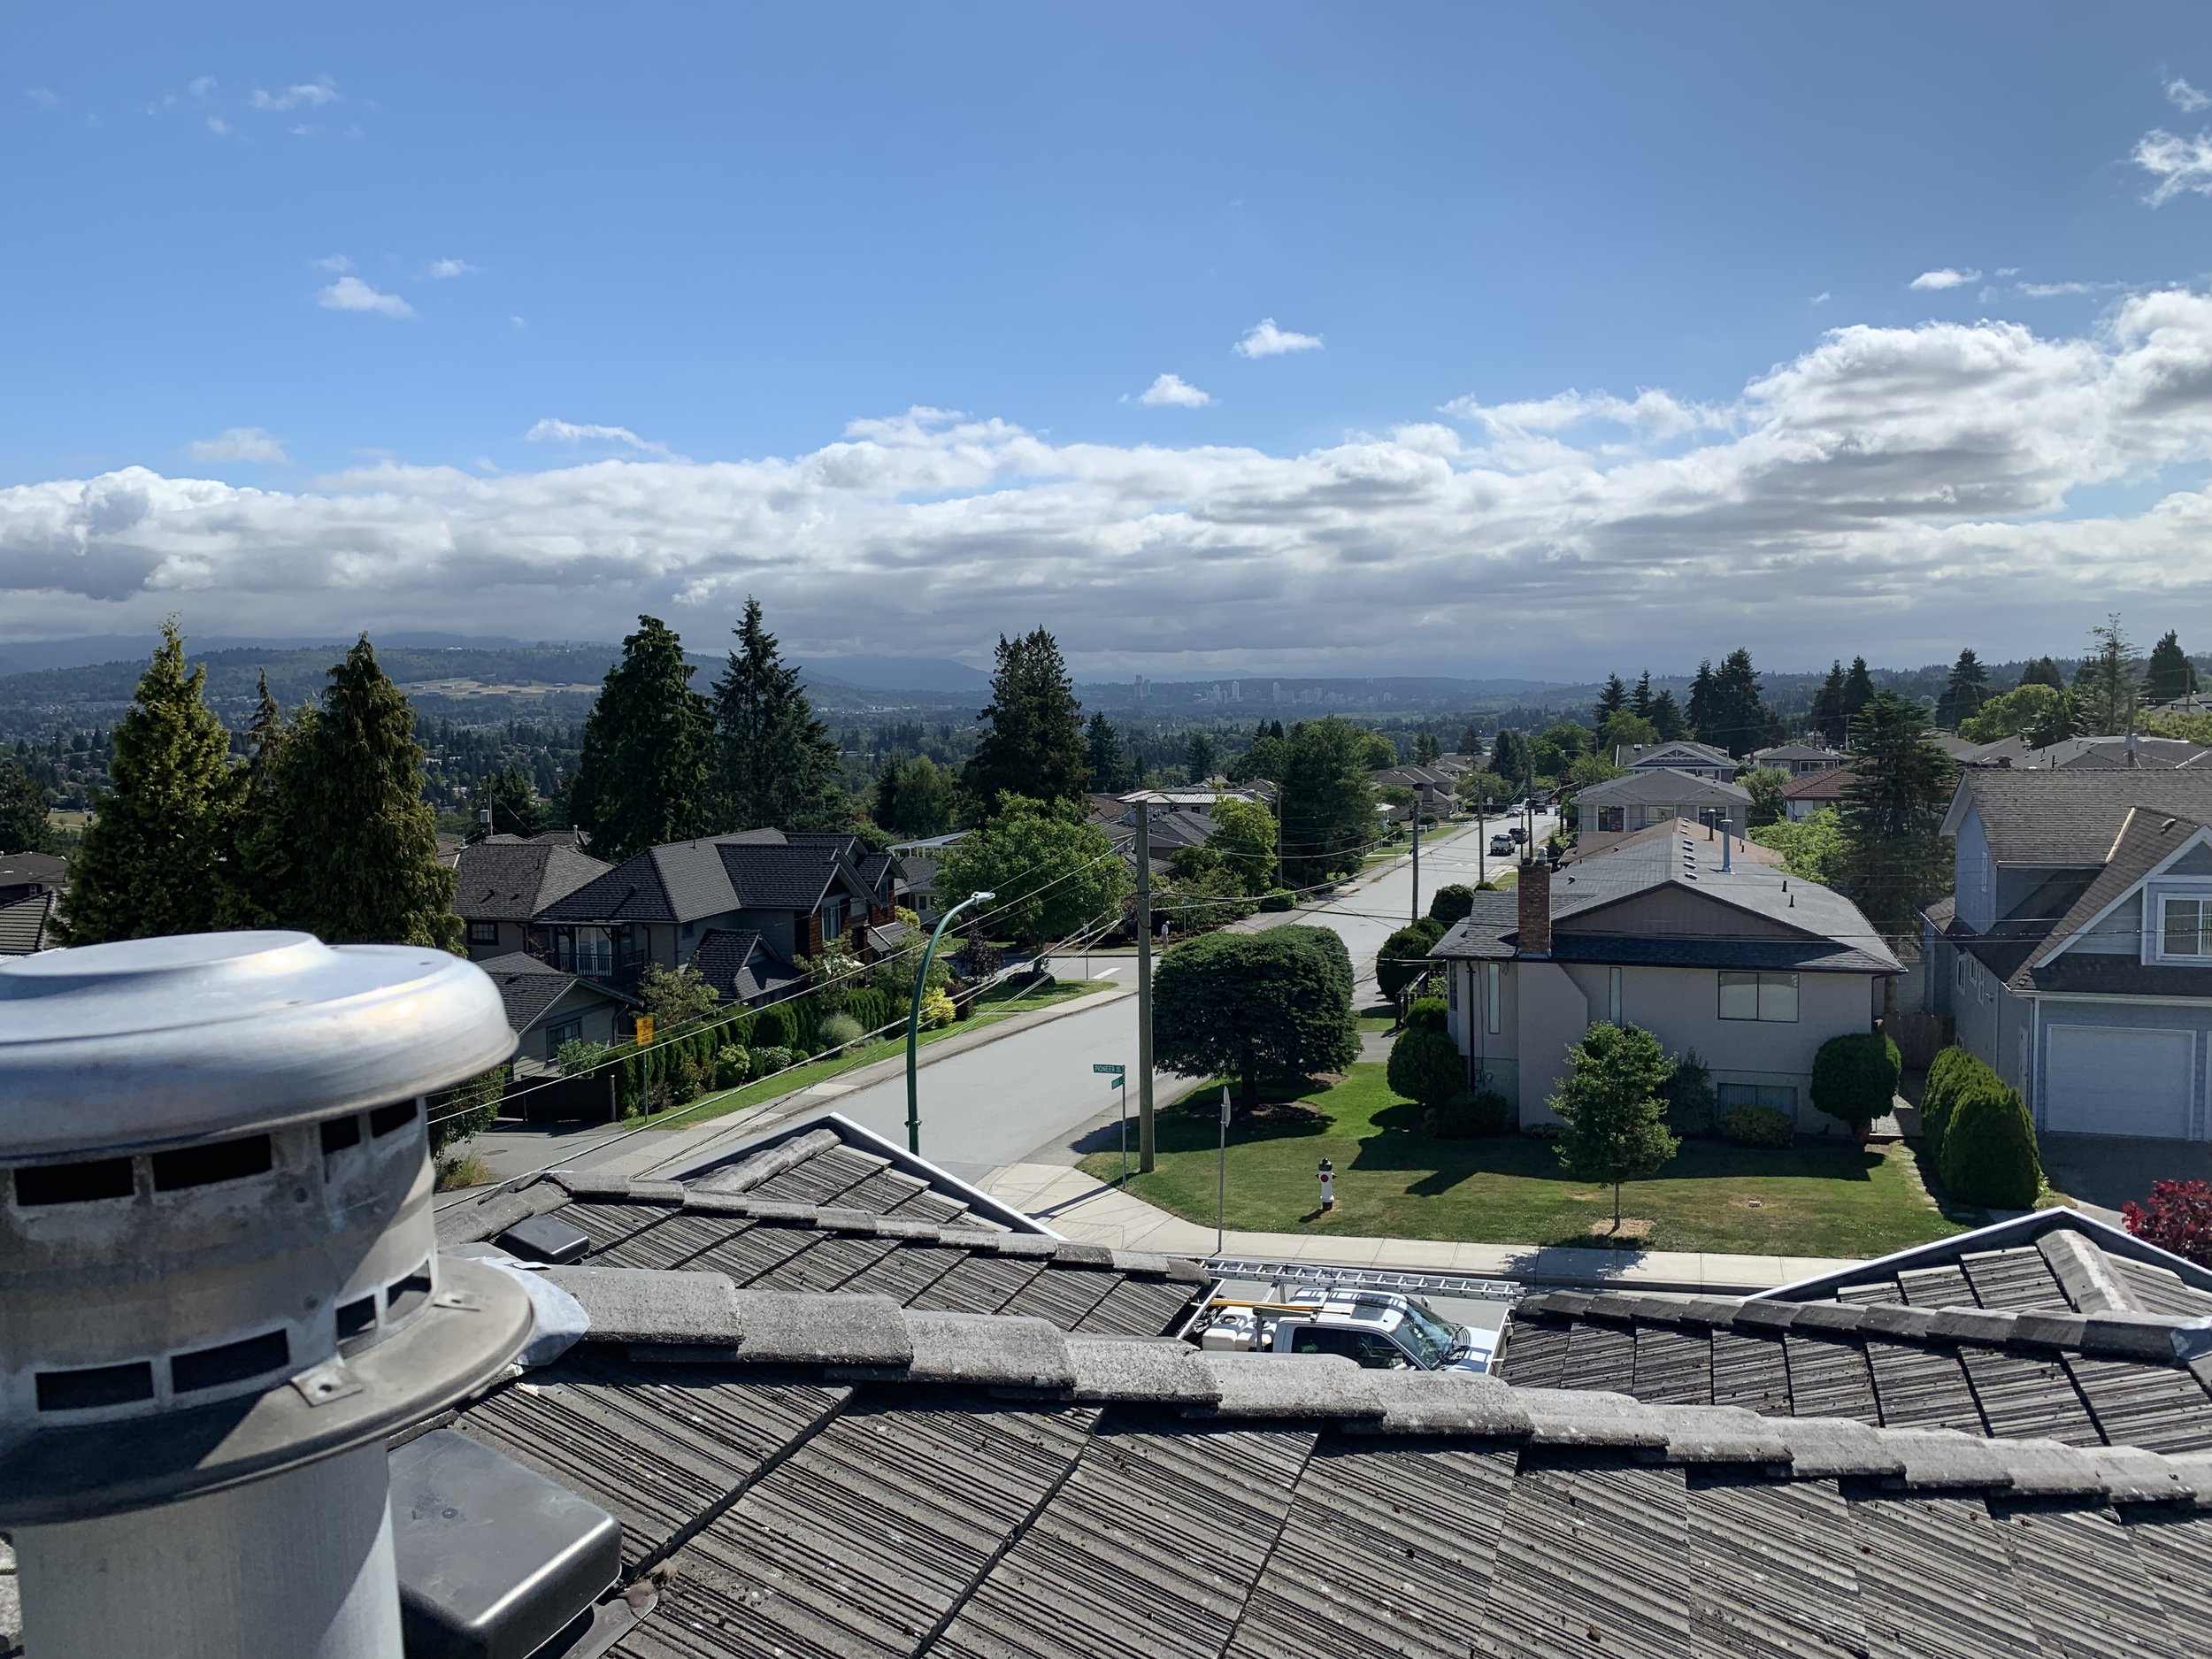 Cleaning the roofs of Burnaby